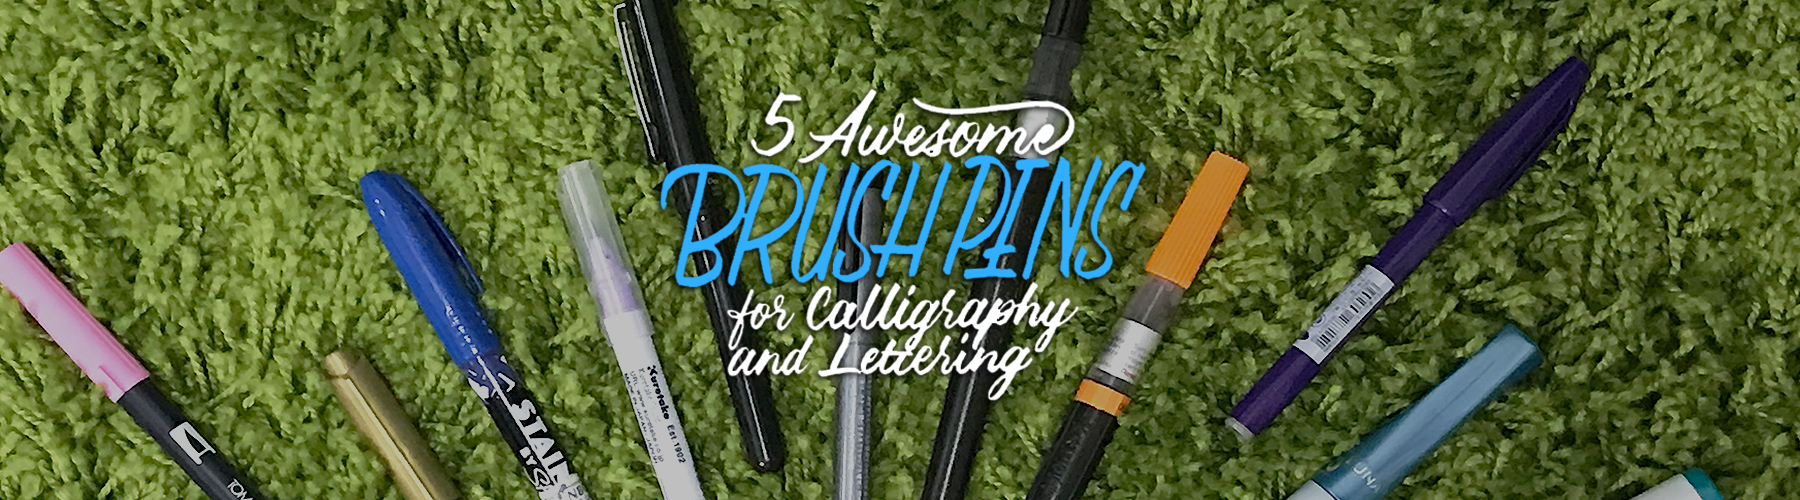 5-Awesome-Brush-Pens-for-Calligraphy-and-Lettering.jpg